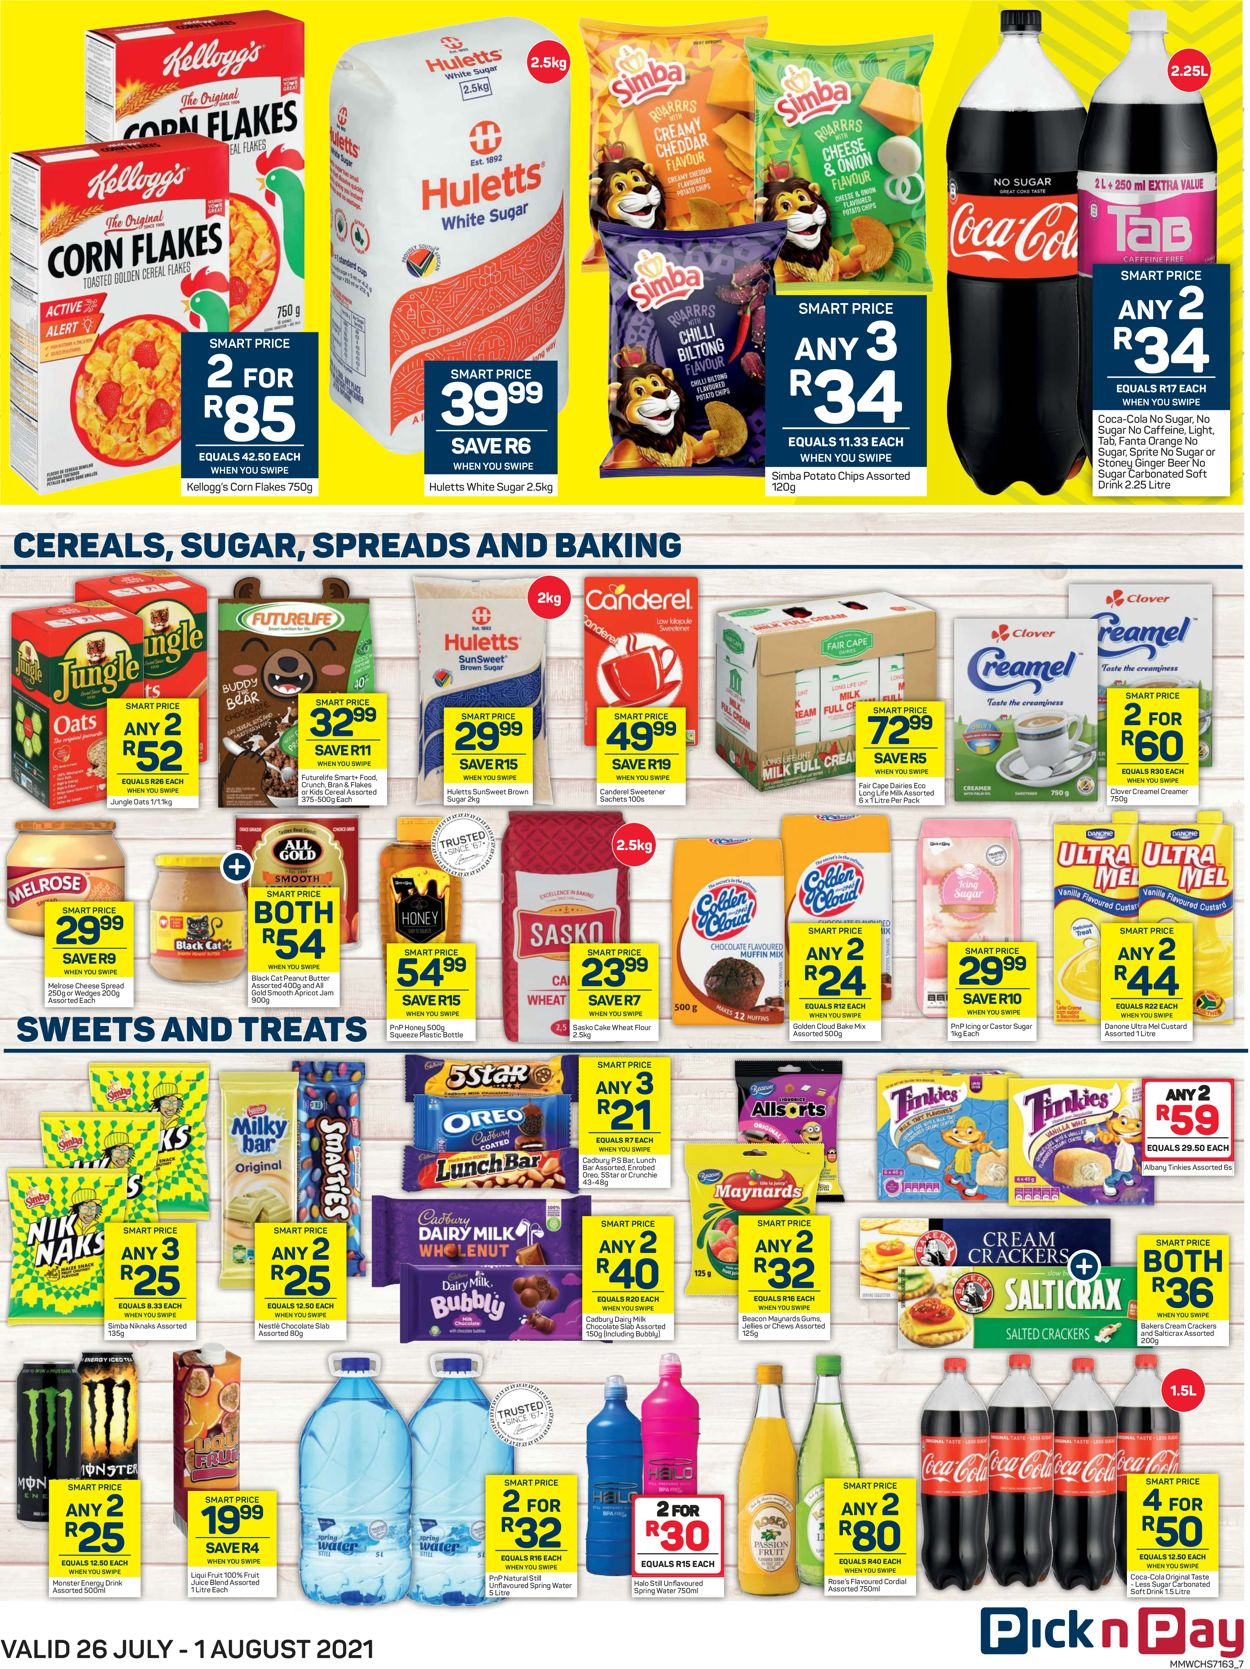 Pick n Pay Catalogue - 2021/07/26-2021/08/01 (Page 7)